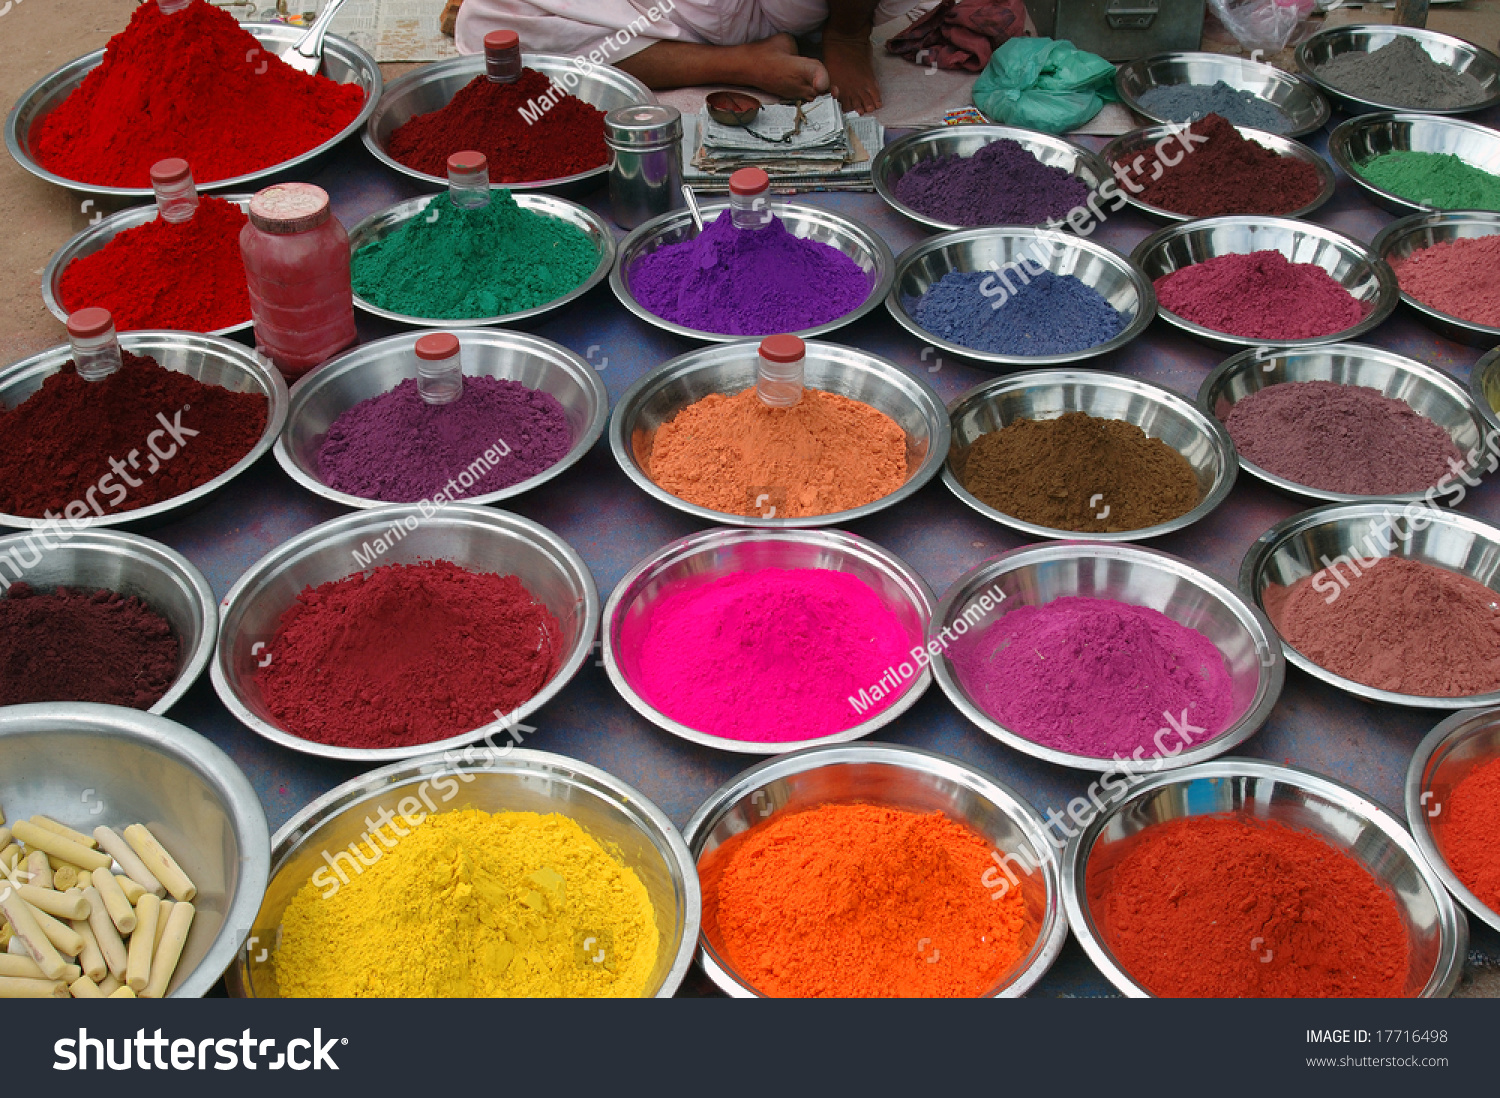 Natural Dyes Stock Photo 17716498 - Shutterstock